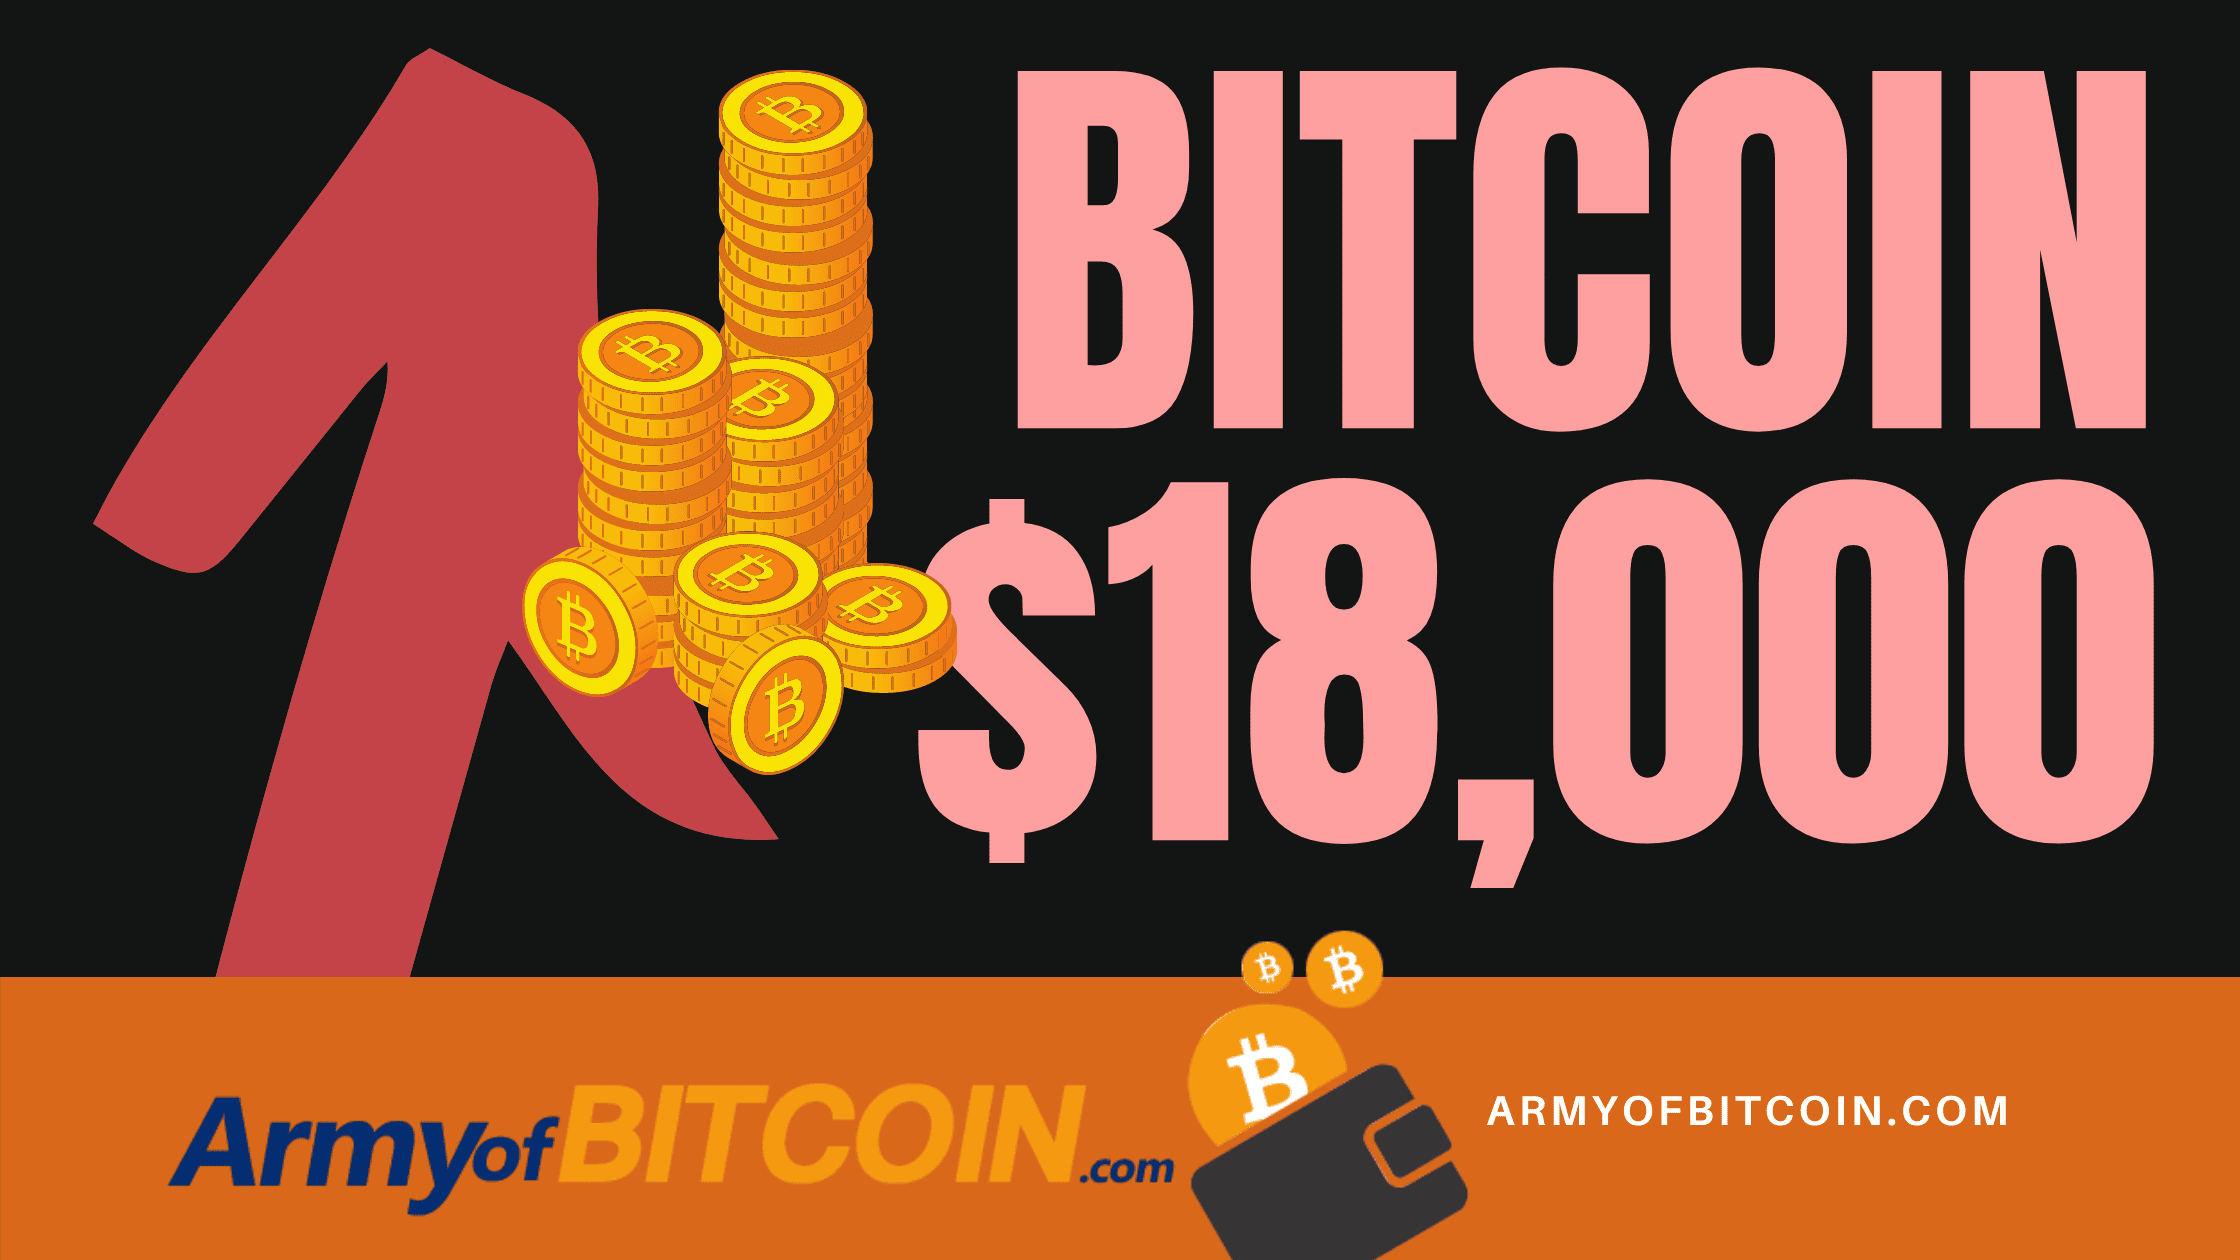 The Price Of Bitcoin Is Over $18,000. How High Will It Go?